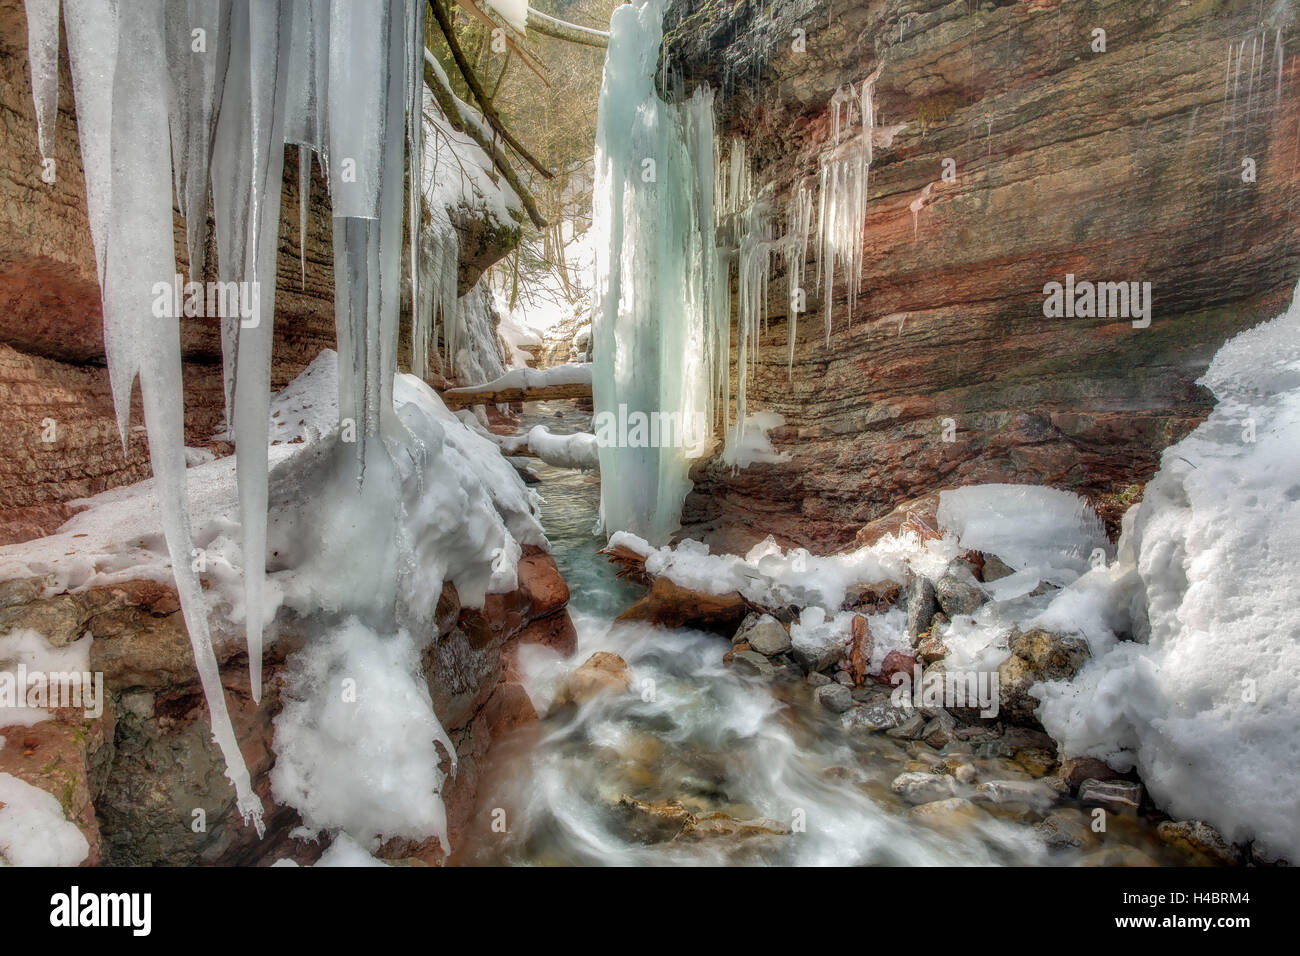 Rock formation at the Taugl in winter, waterfall, Salzburg, Austria Stock Photo